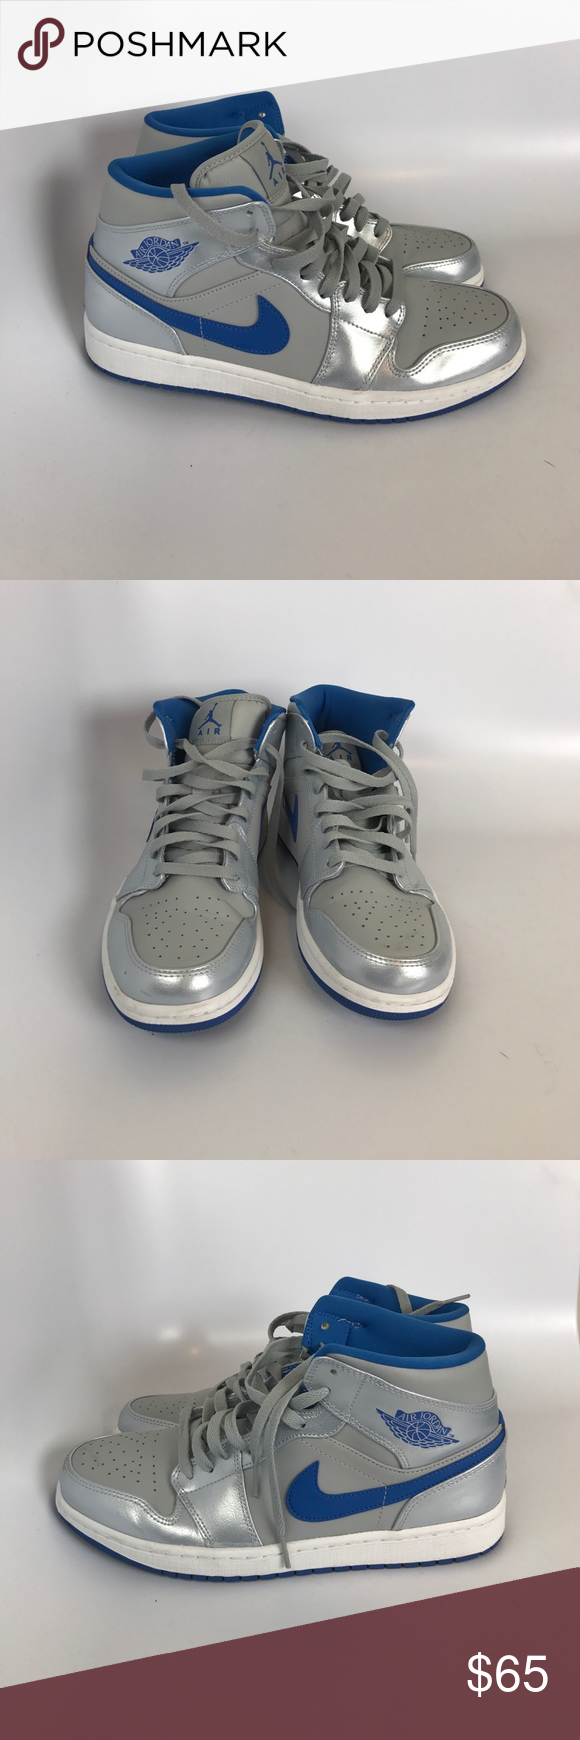 da9e8295d02f47 Air Jordan 1 Mid Style  554724-025 Condition 7 10 W O Box 100% Authentic  Offers are accepted Air Jordan Shoes Sneakers